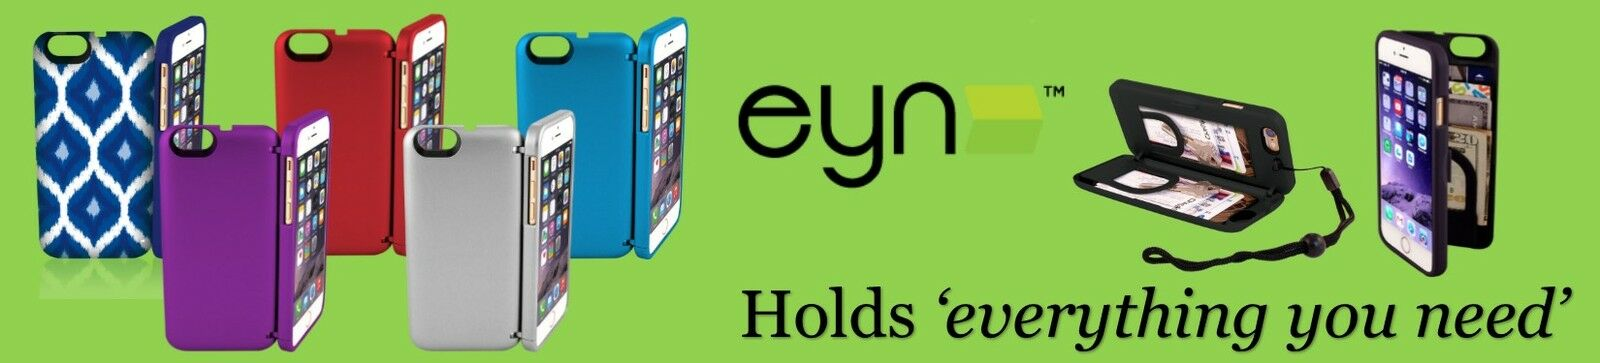 eyn products, LLC